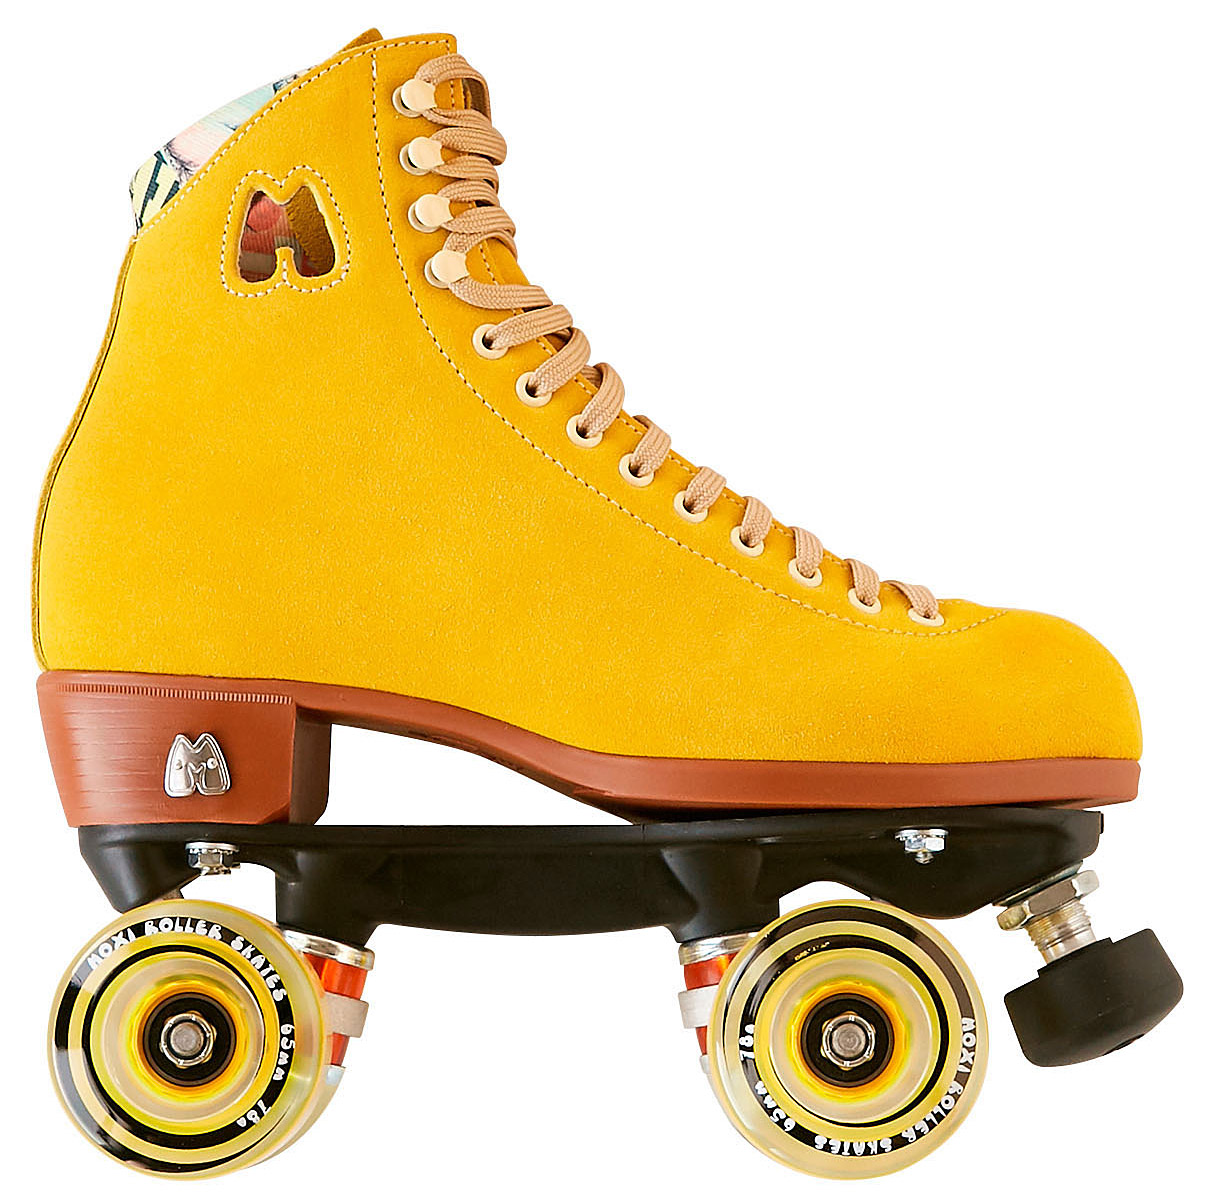 yellow suede roller skates